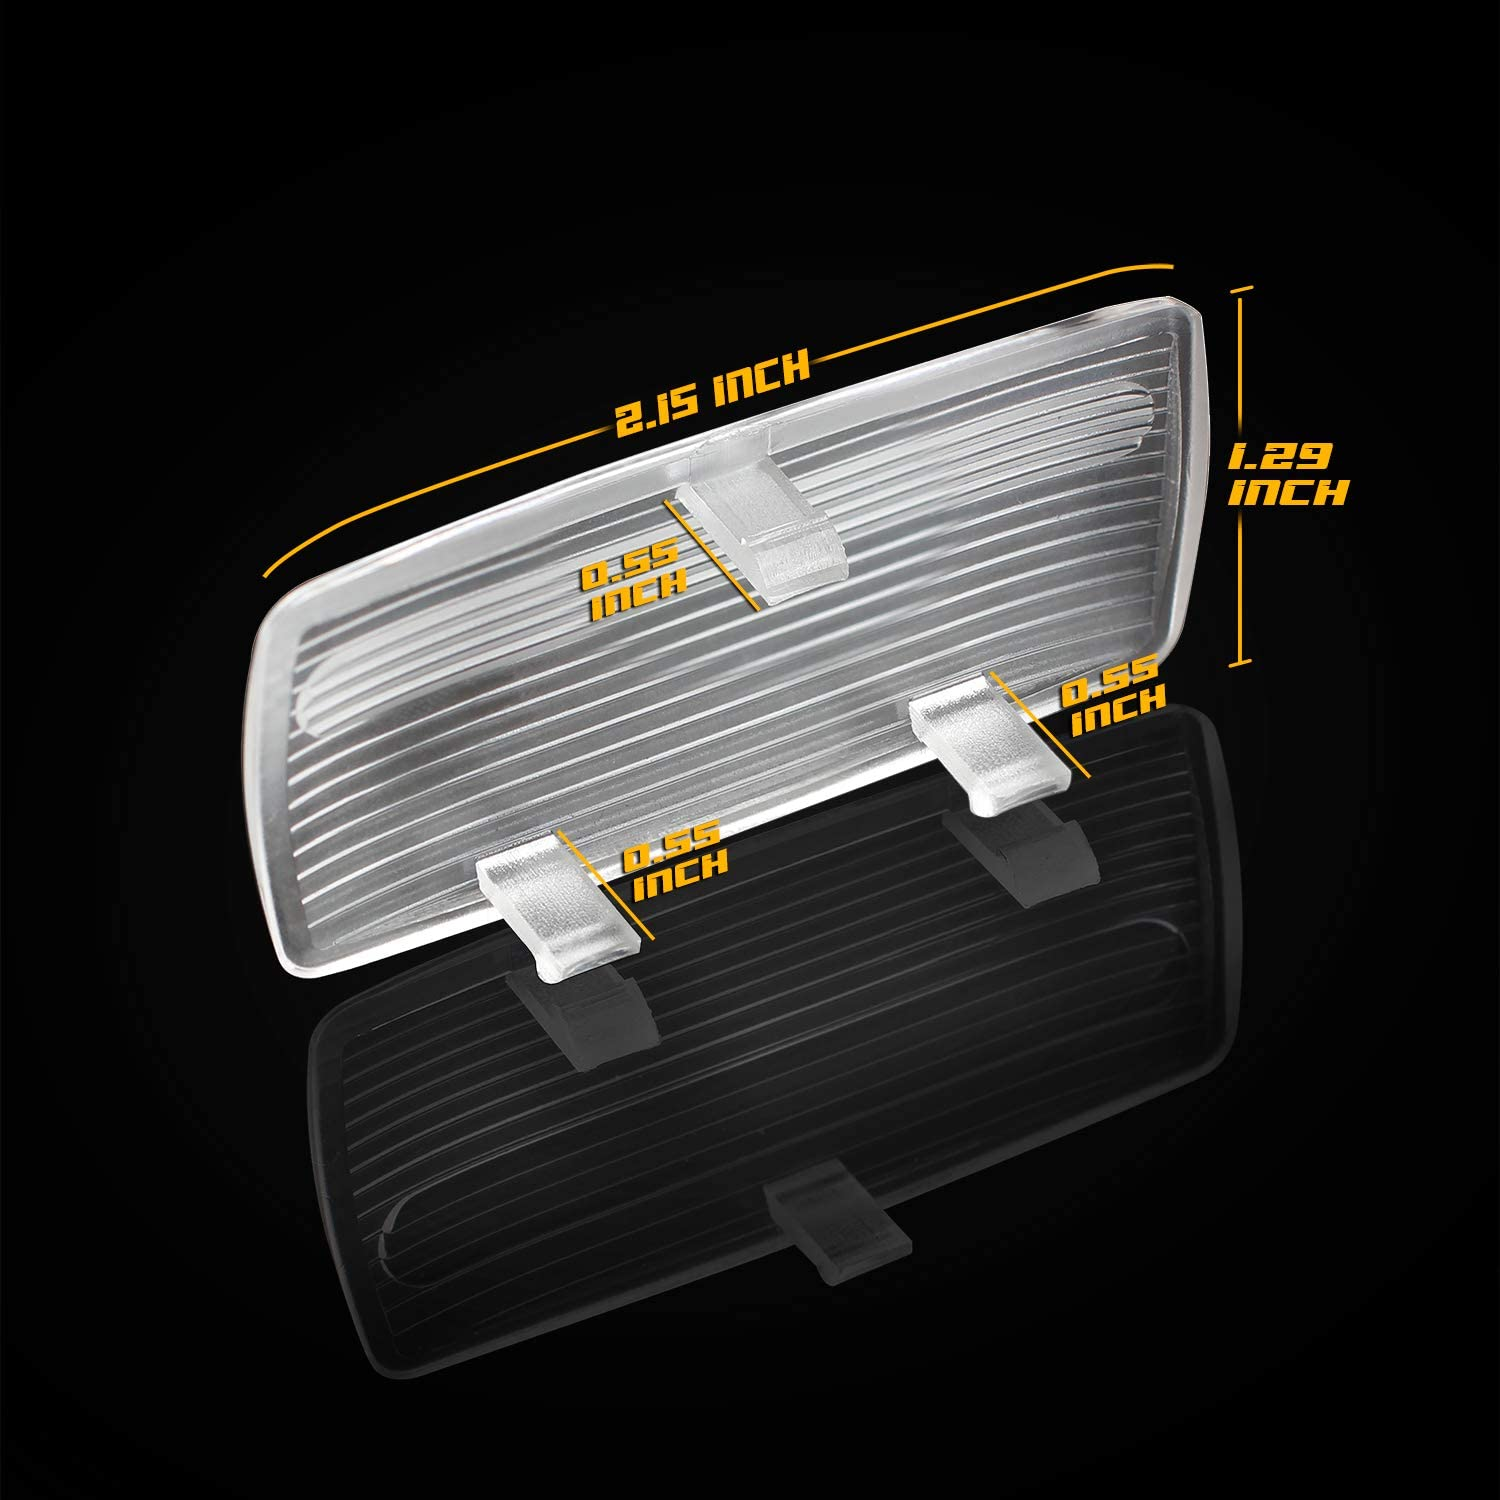 HERCOO Door Courtesy Light Cover Lens Interior Dome lamp Clear Housing for 34261-SV1-A01 Compatible with Honda 1994-2002 Accord 2003-2008 Pilot